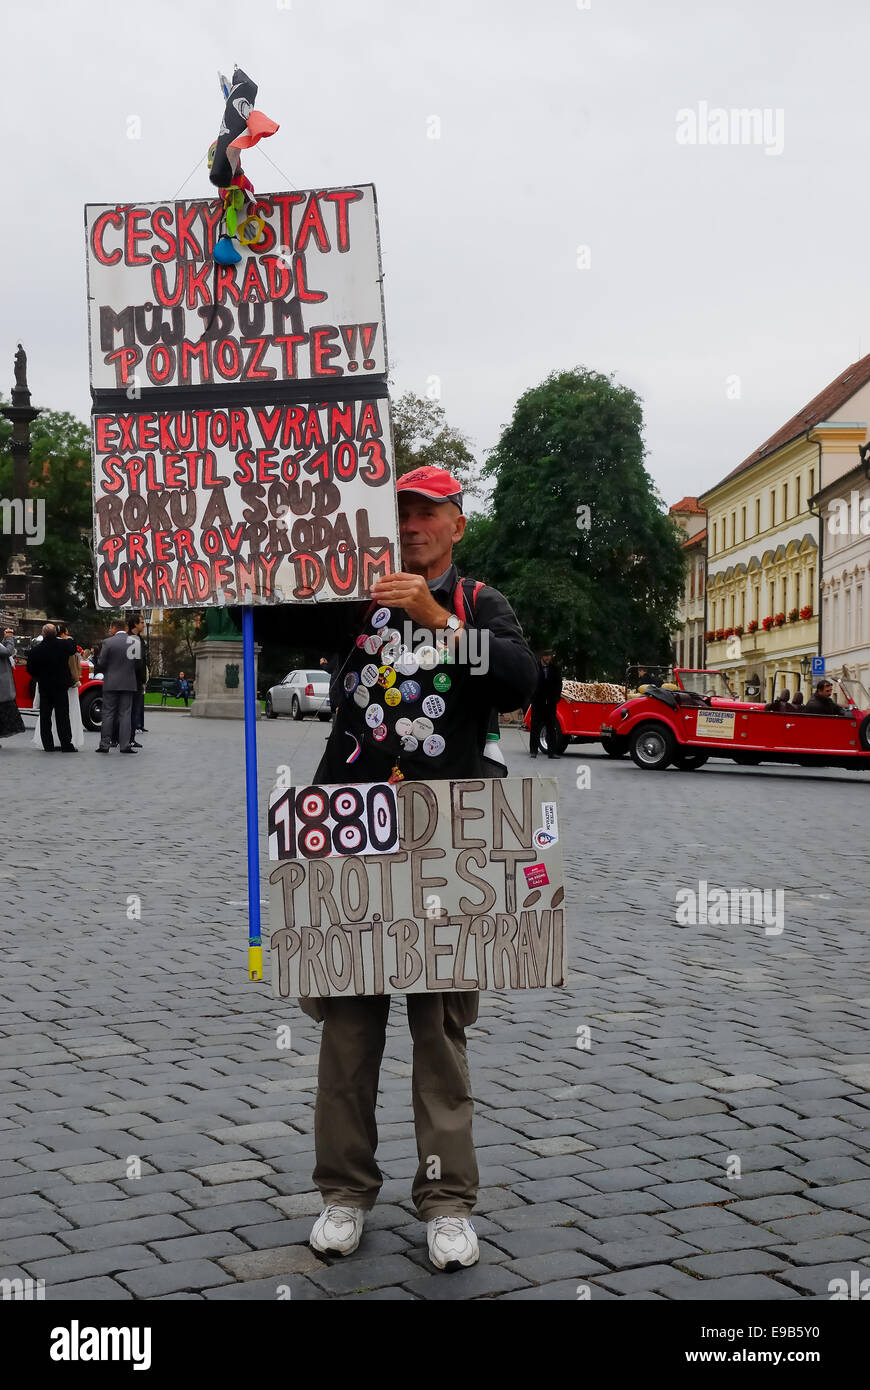 Prague, Hradcanske Namesti. A demonstrator protests from 1880 days because he confiscated the house. - Stock Image